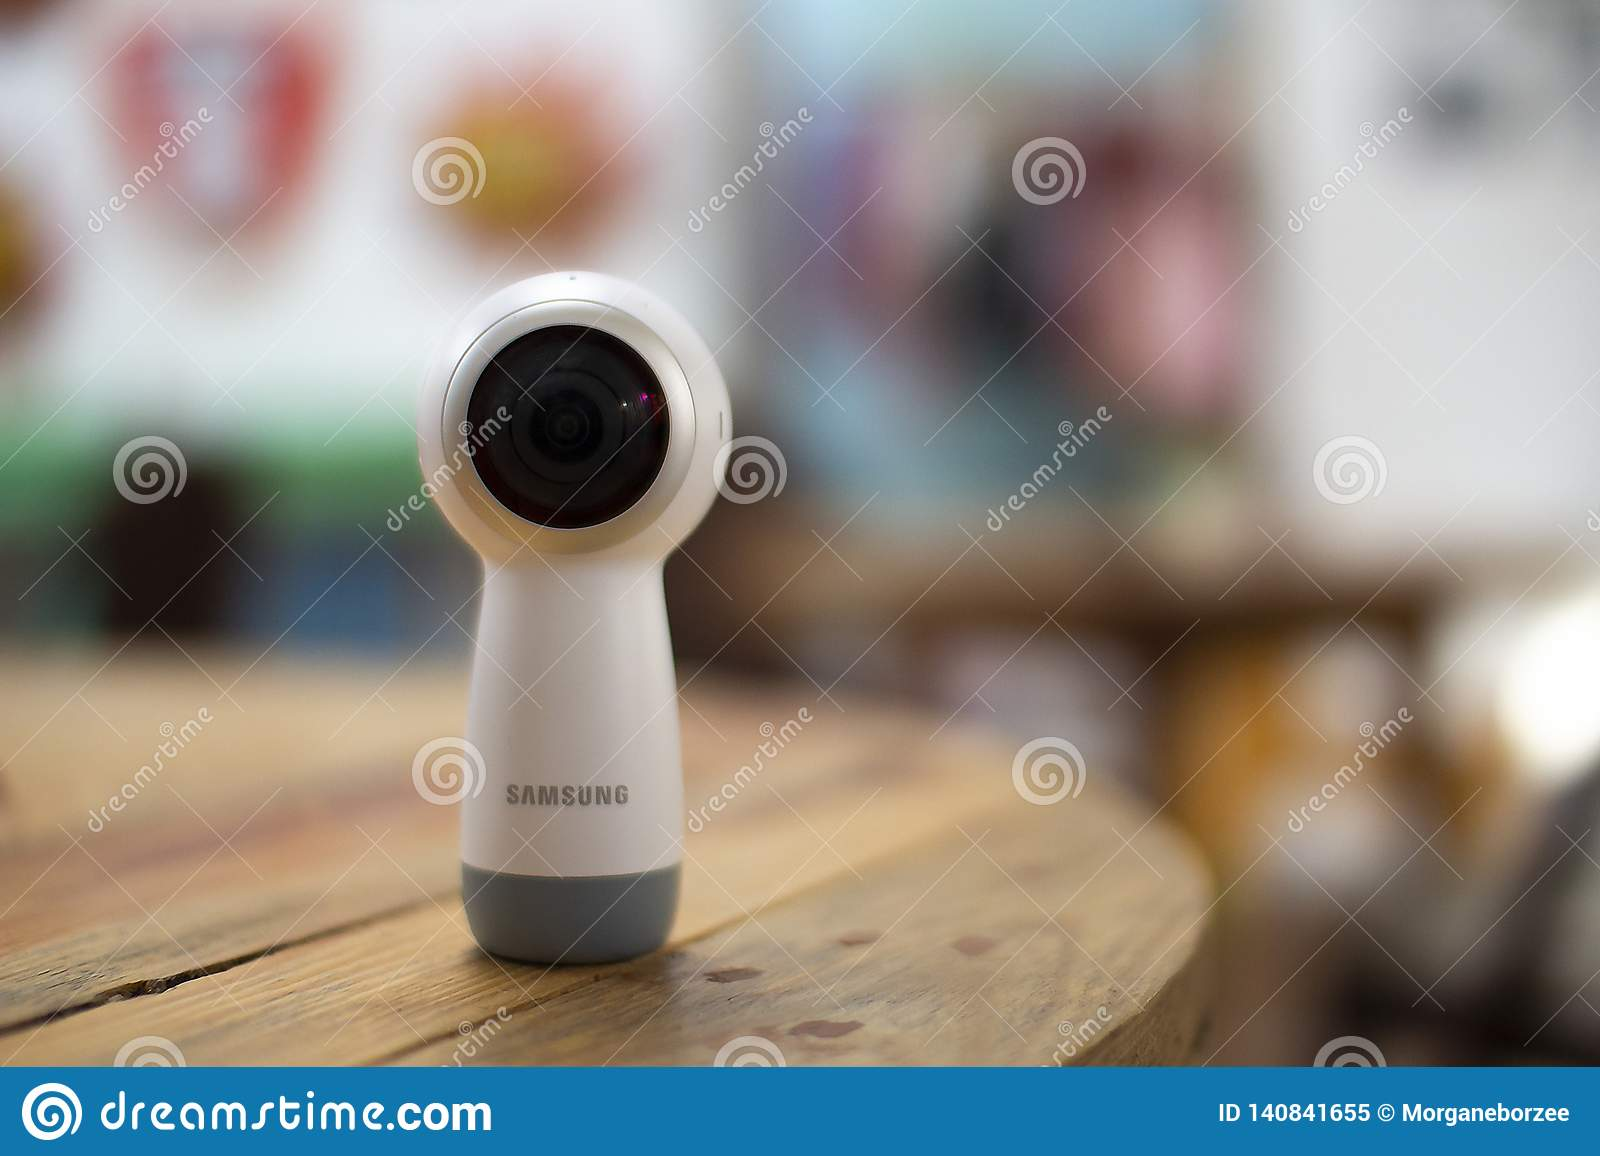 Samsung Gear 360 camera on a wooden table